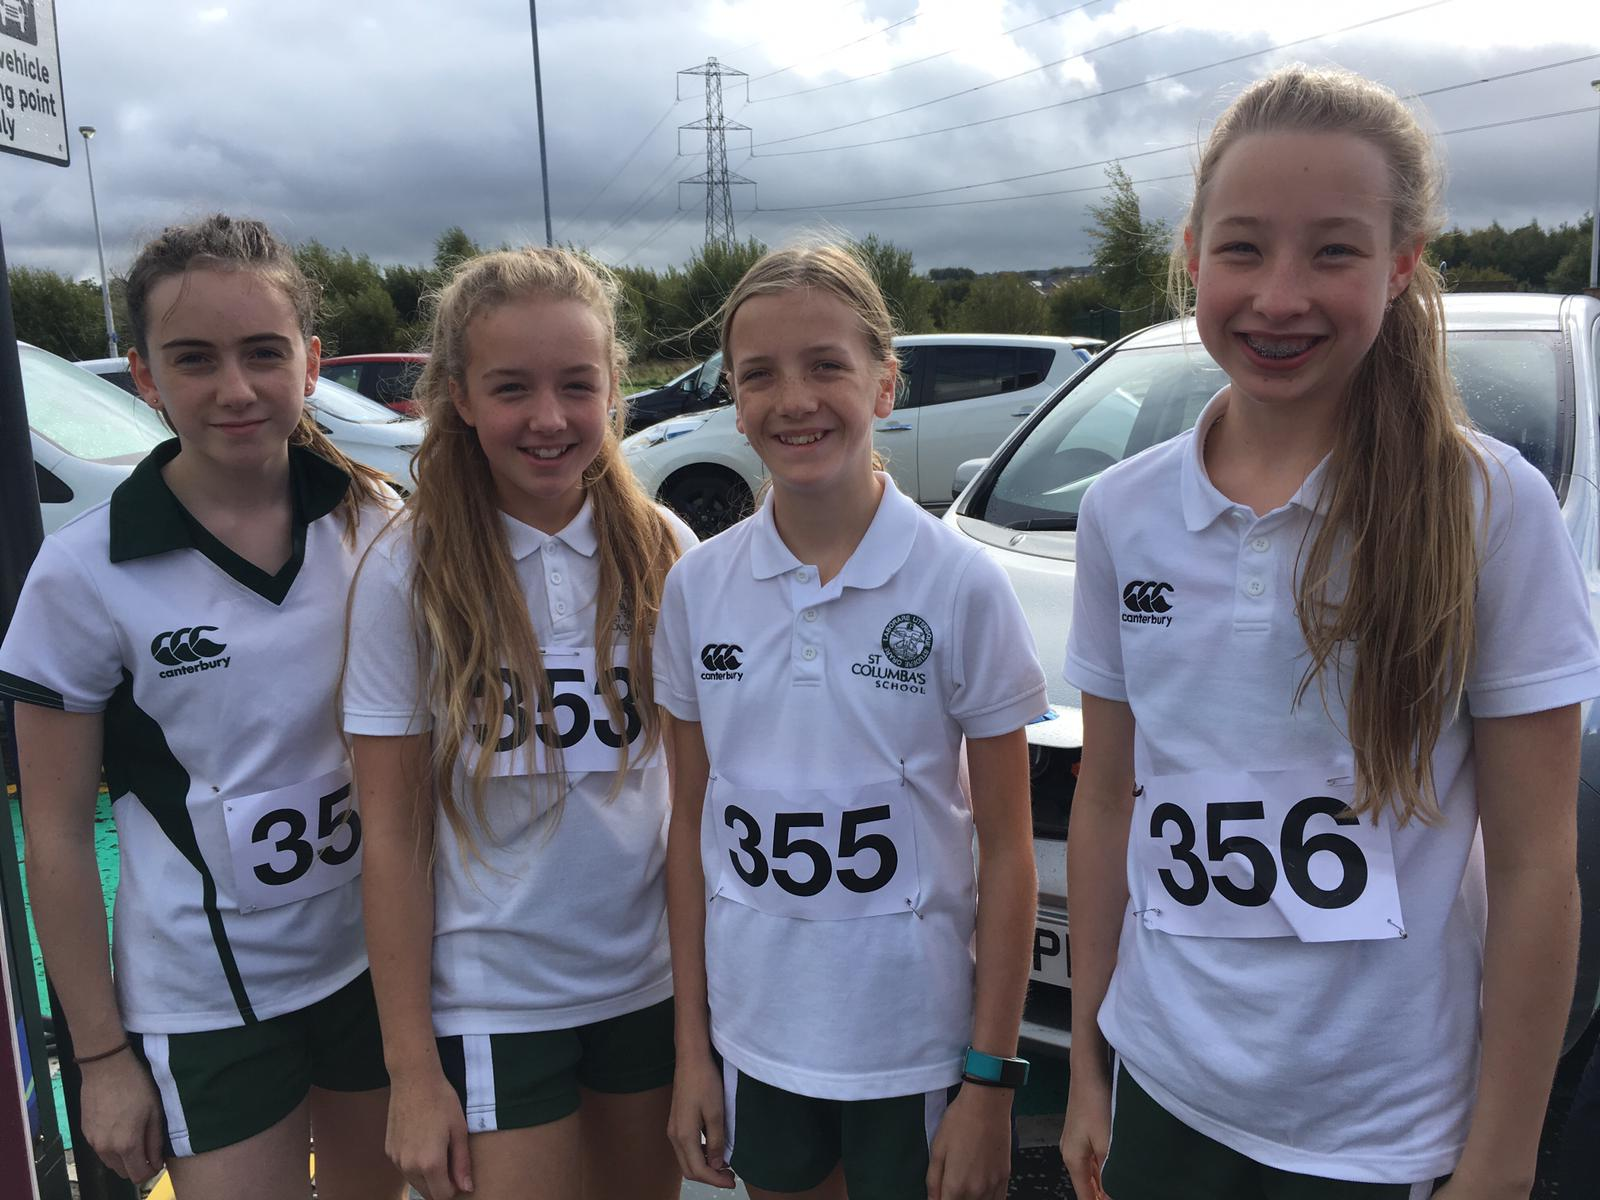 St Columba's Pupils Compete in SSAA Road Race